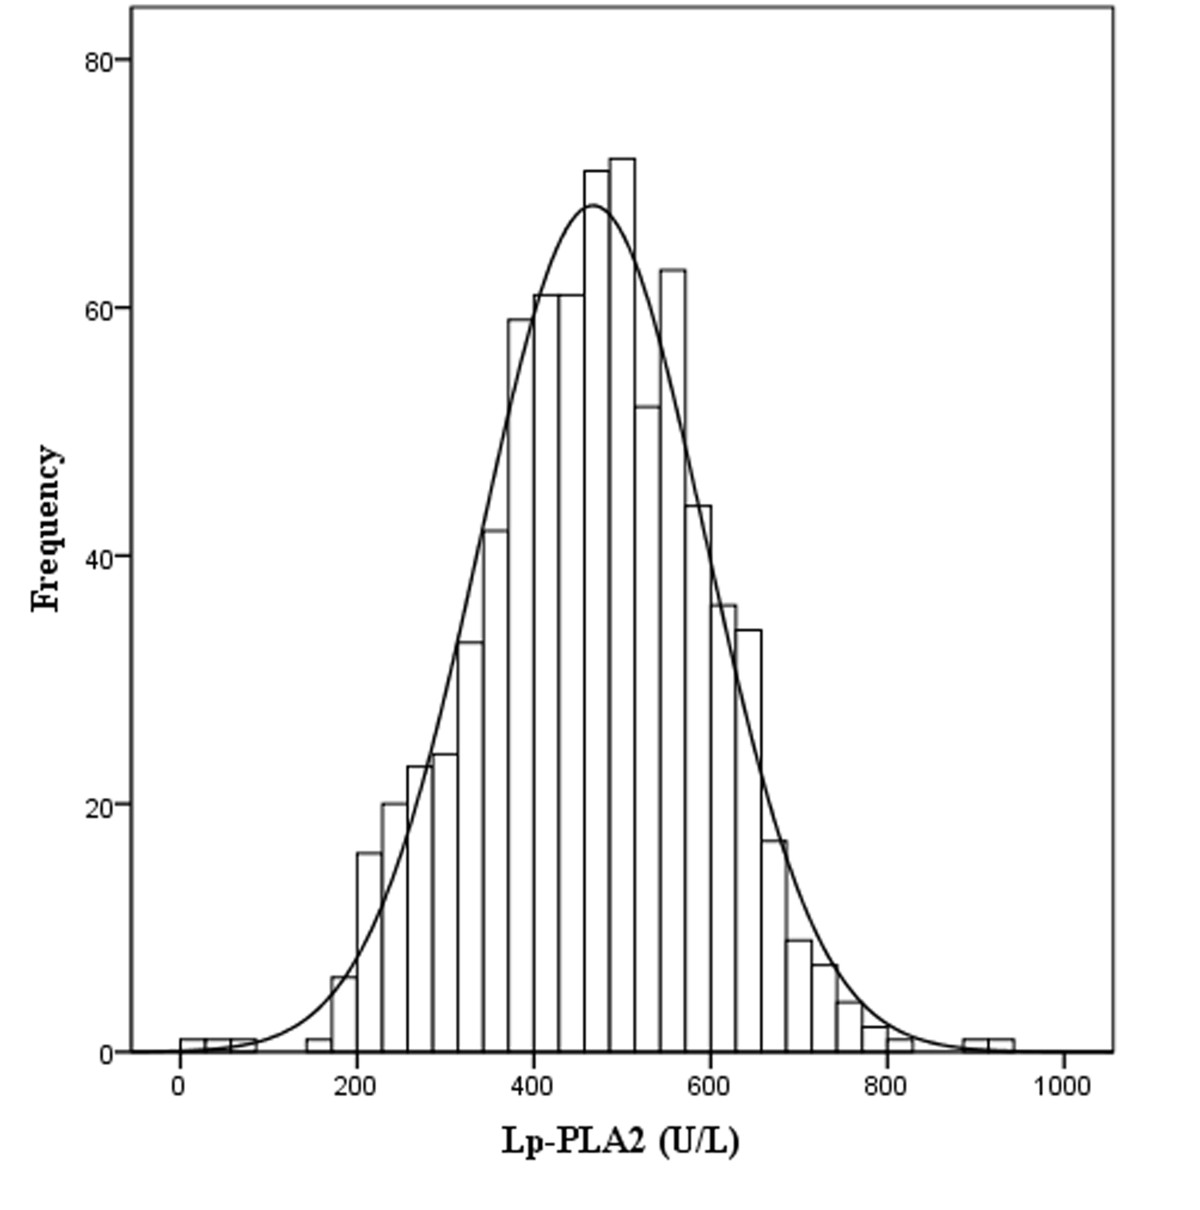 http://static-content.springer.com/image/art%3A10.1186%2F1476-511X-13-6/MediaObjects/12944_2013_Article_1010_Fig1_HTML.jpg